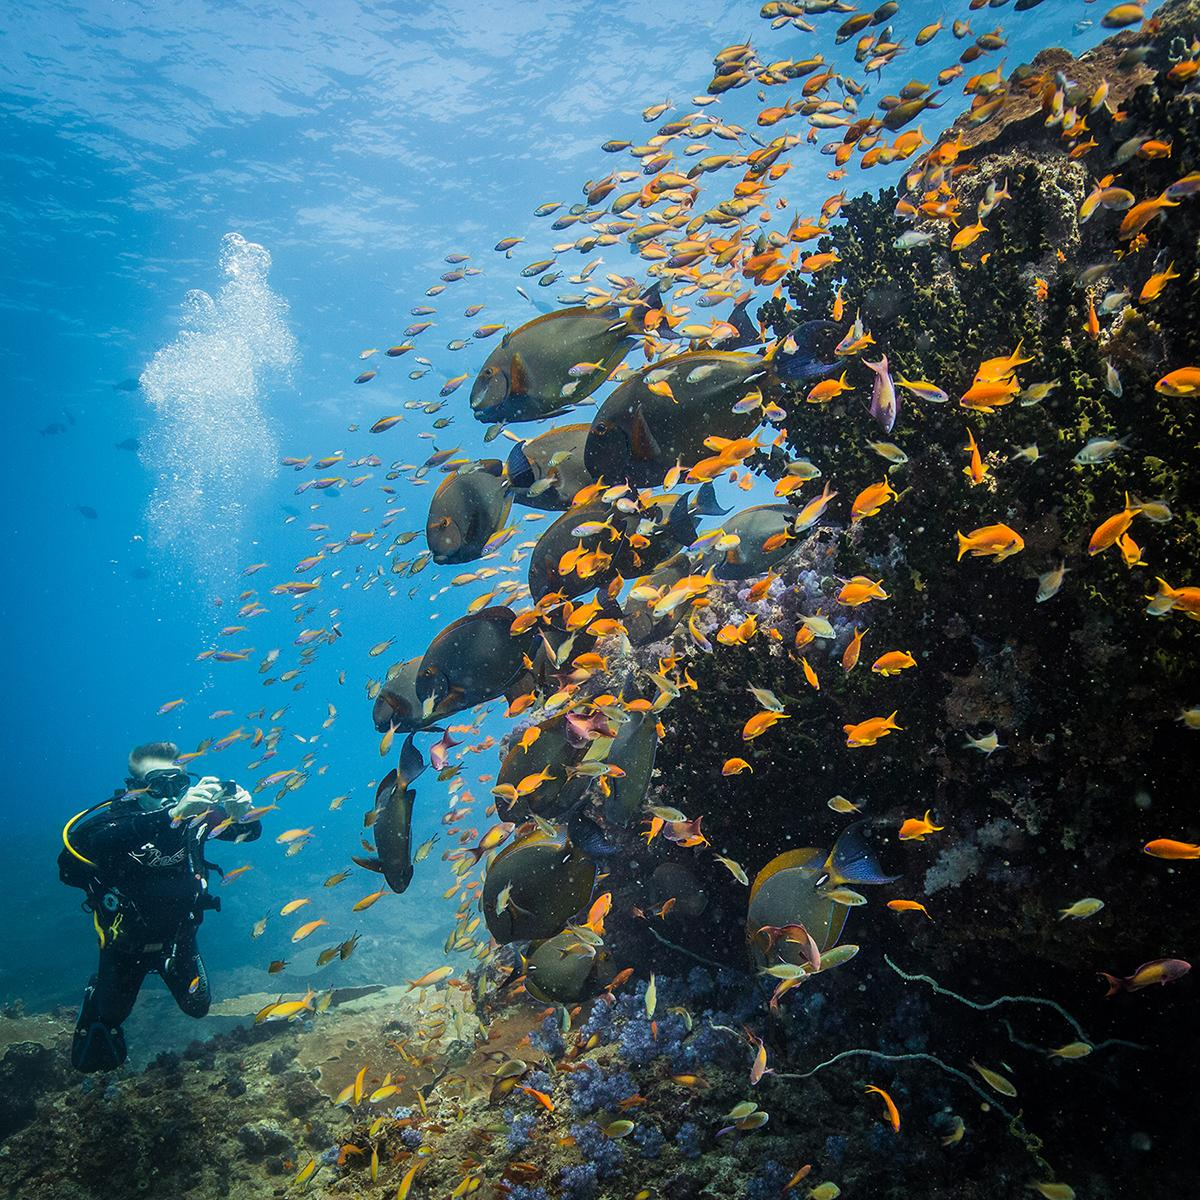 Diving at Two Mile Reef